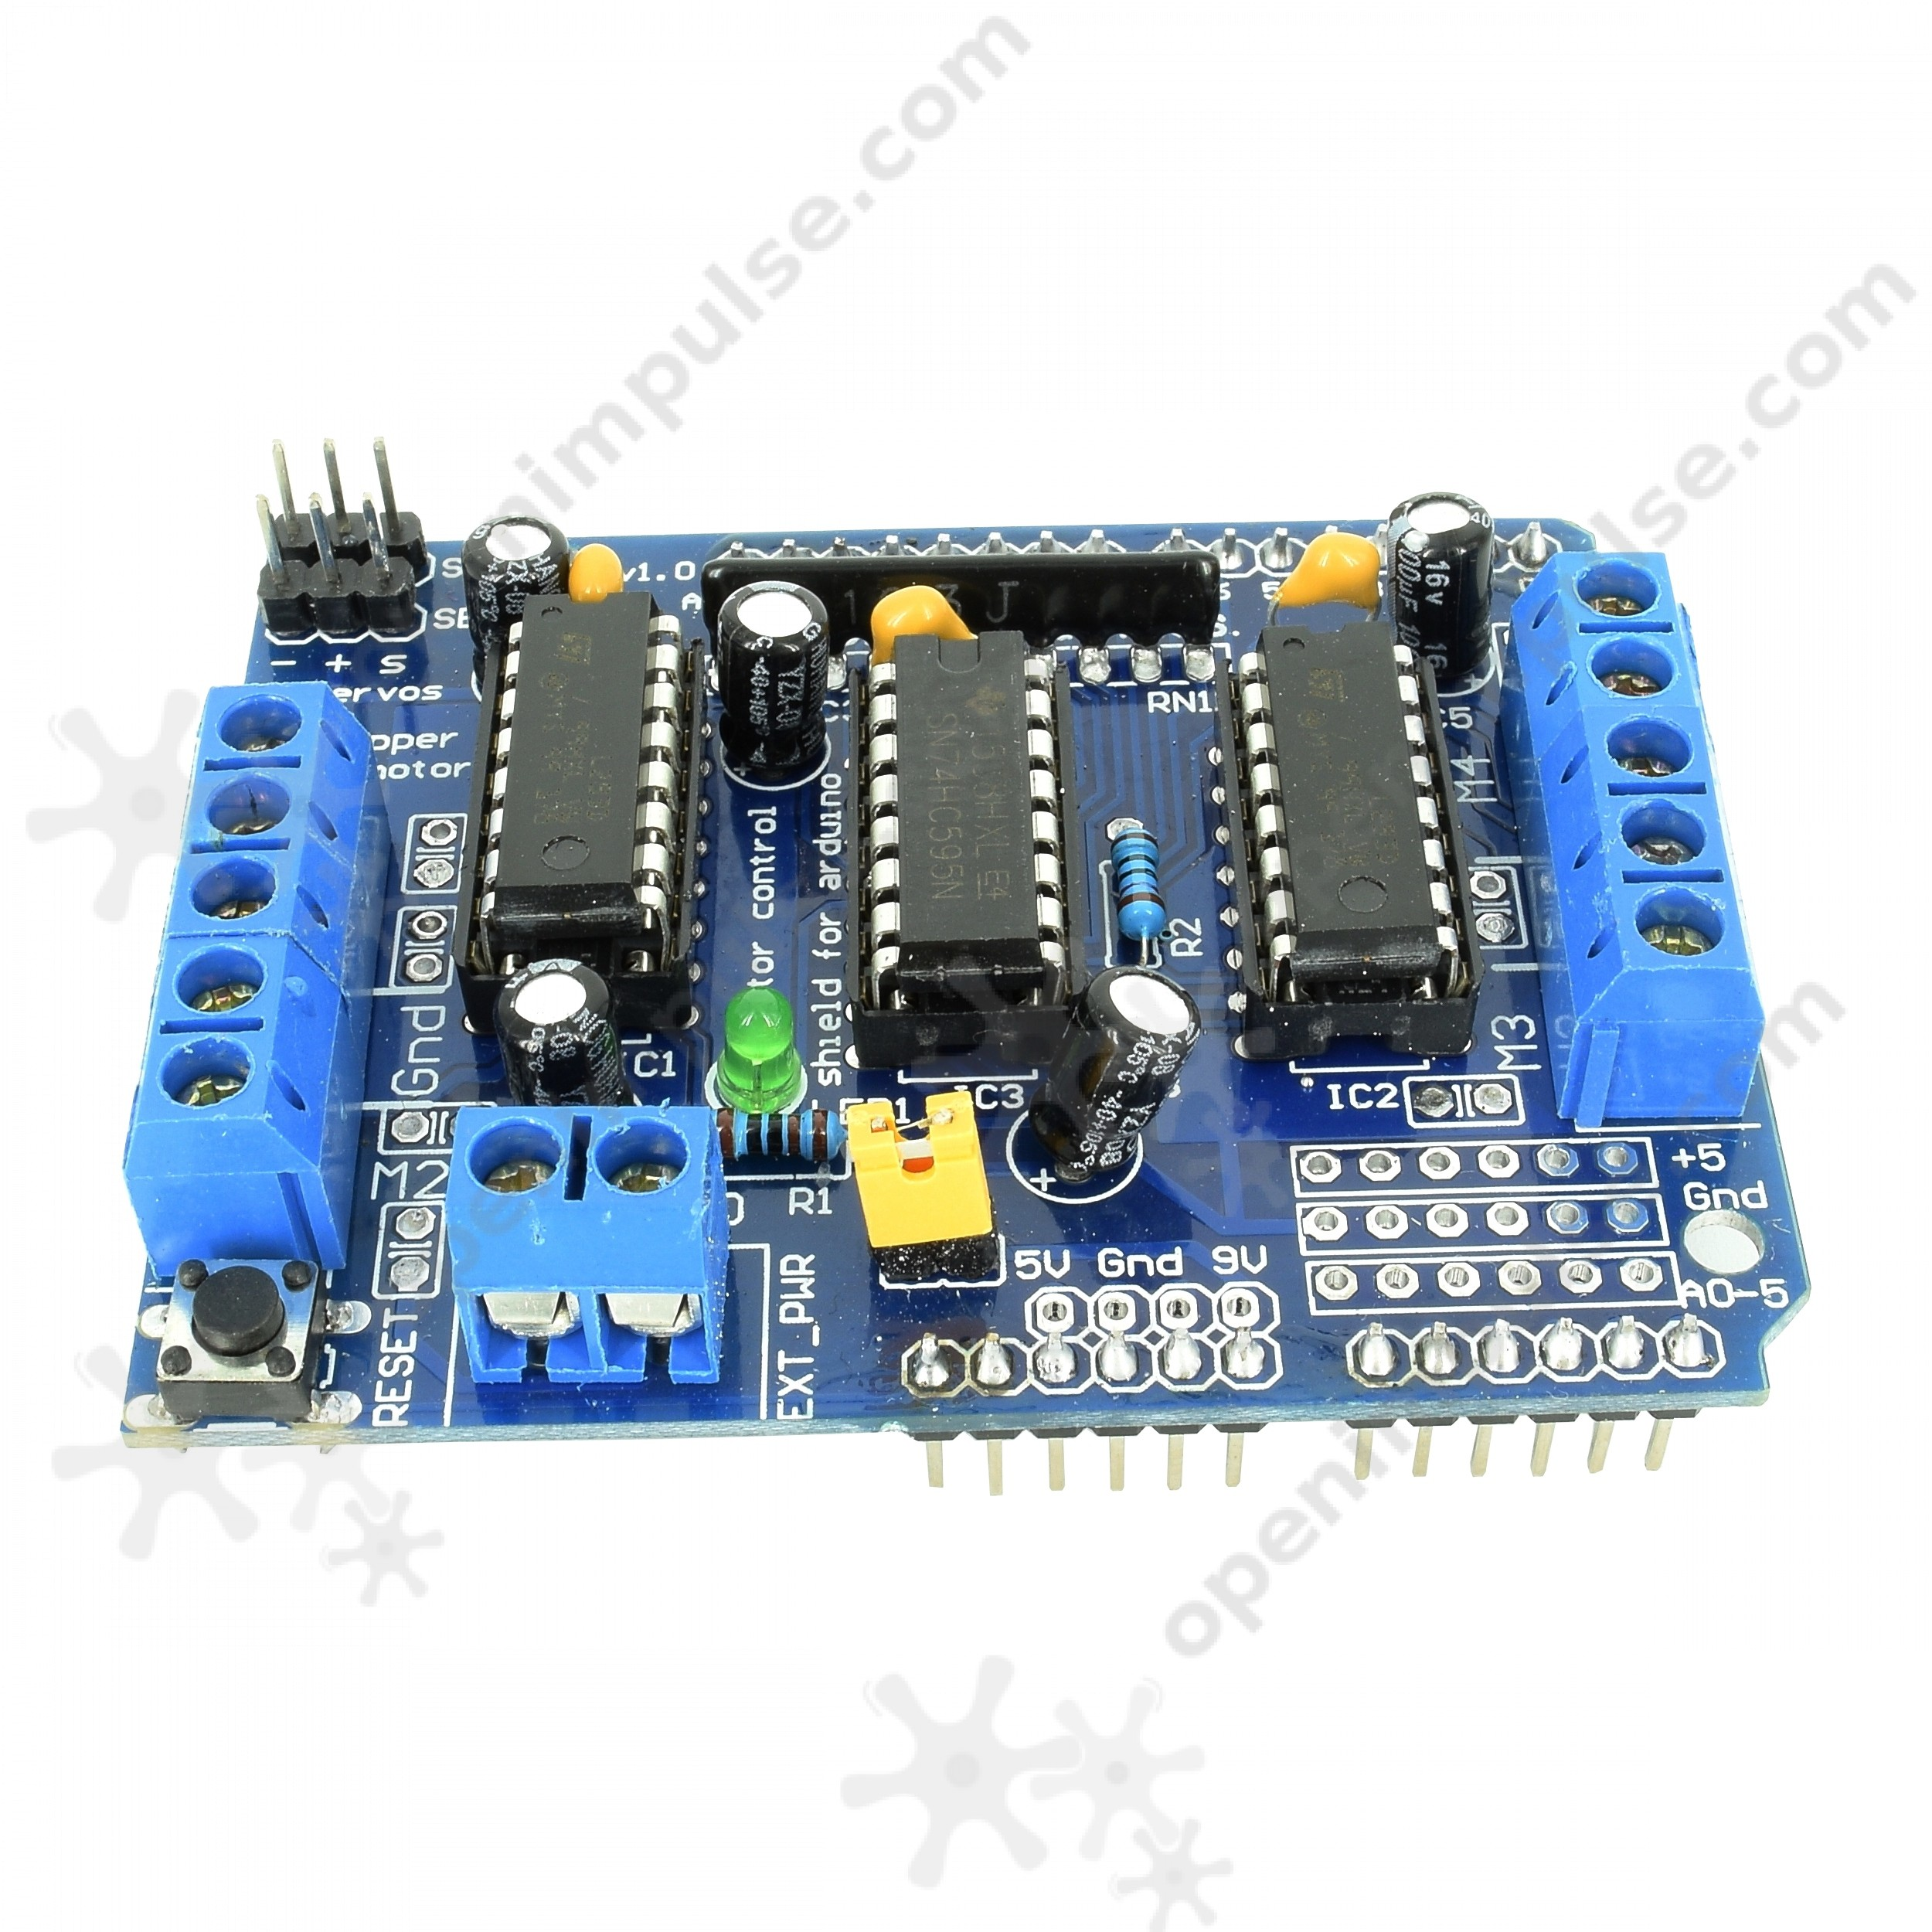 L293D Motor Driver Shield for Arduino | Open ImpulseOpen Impulse